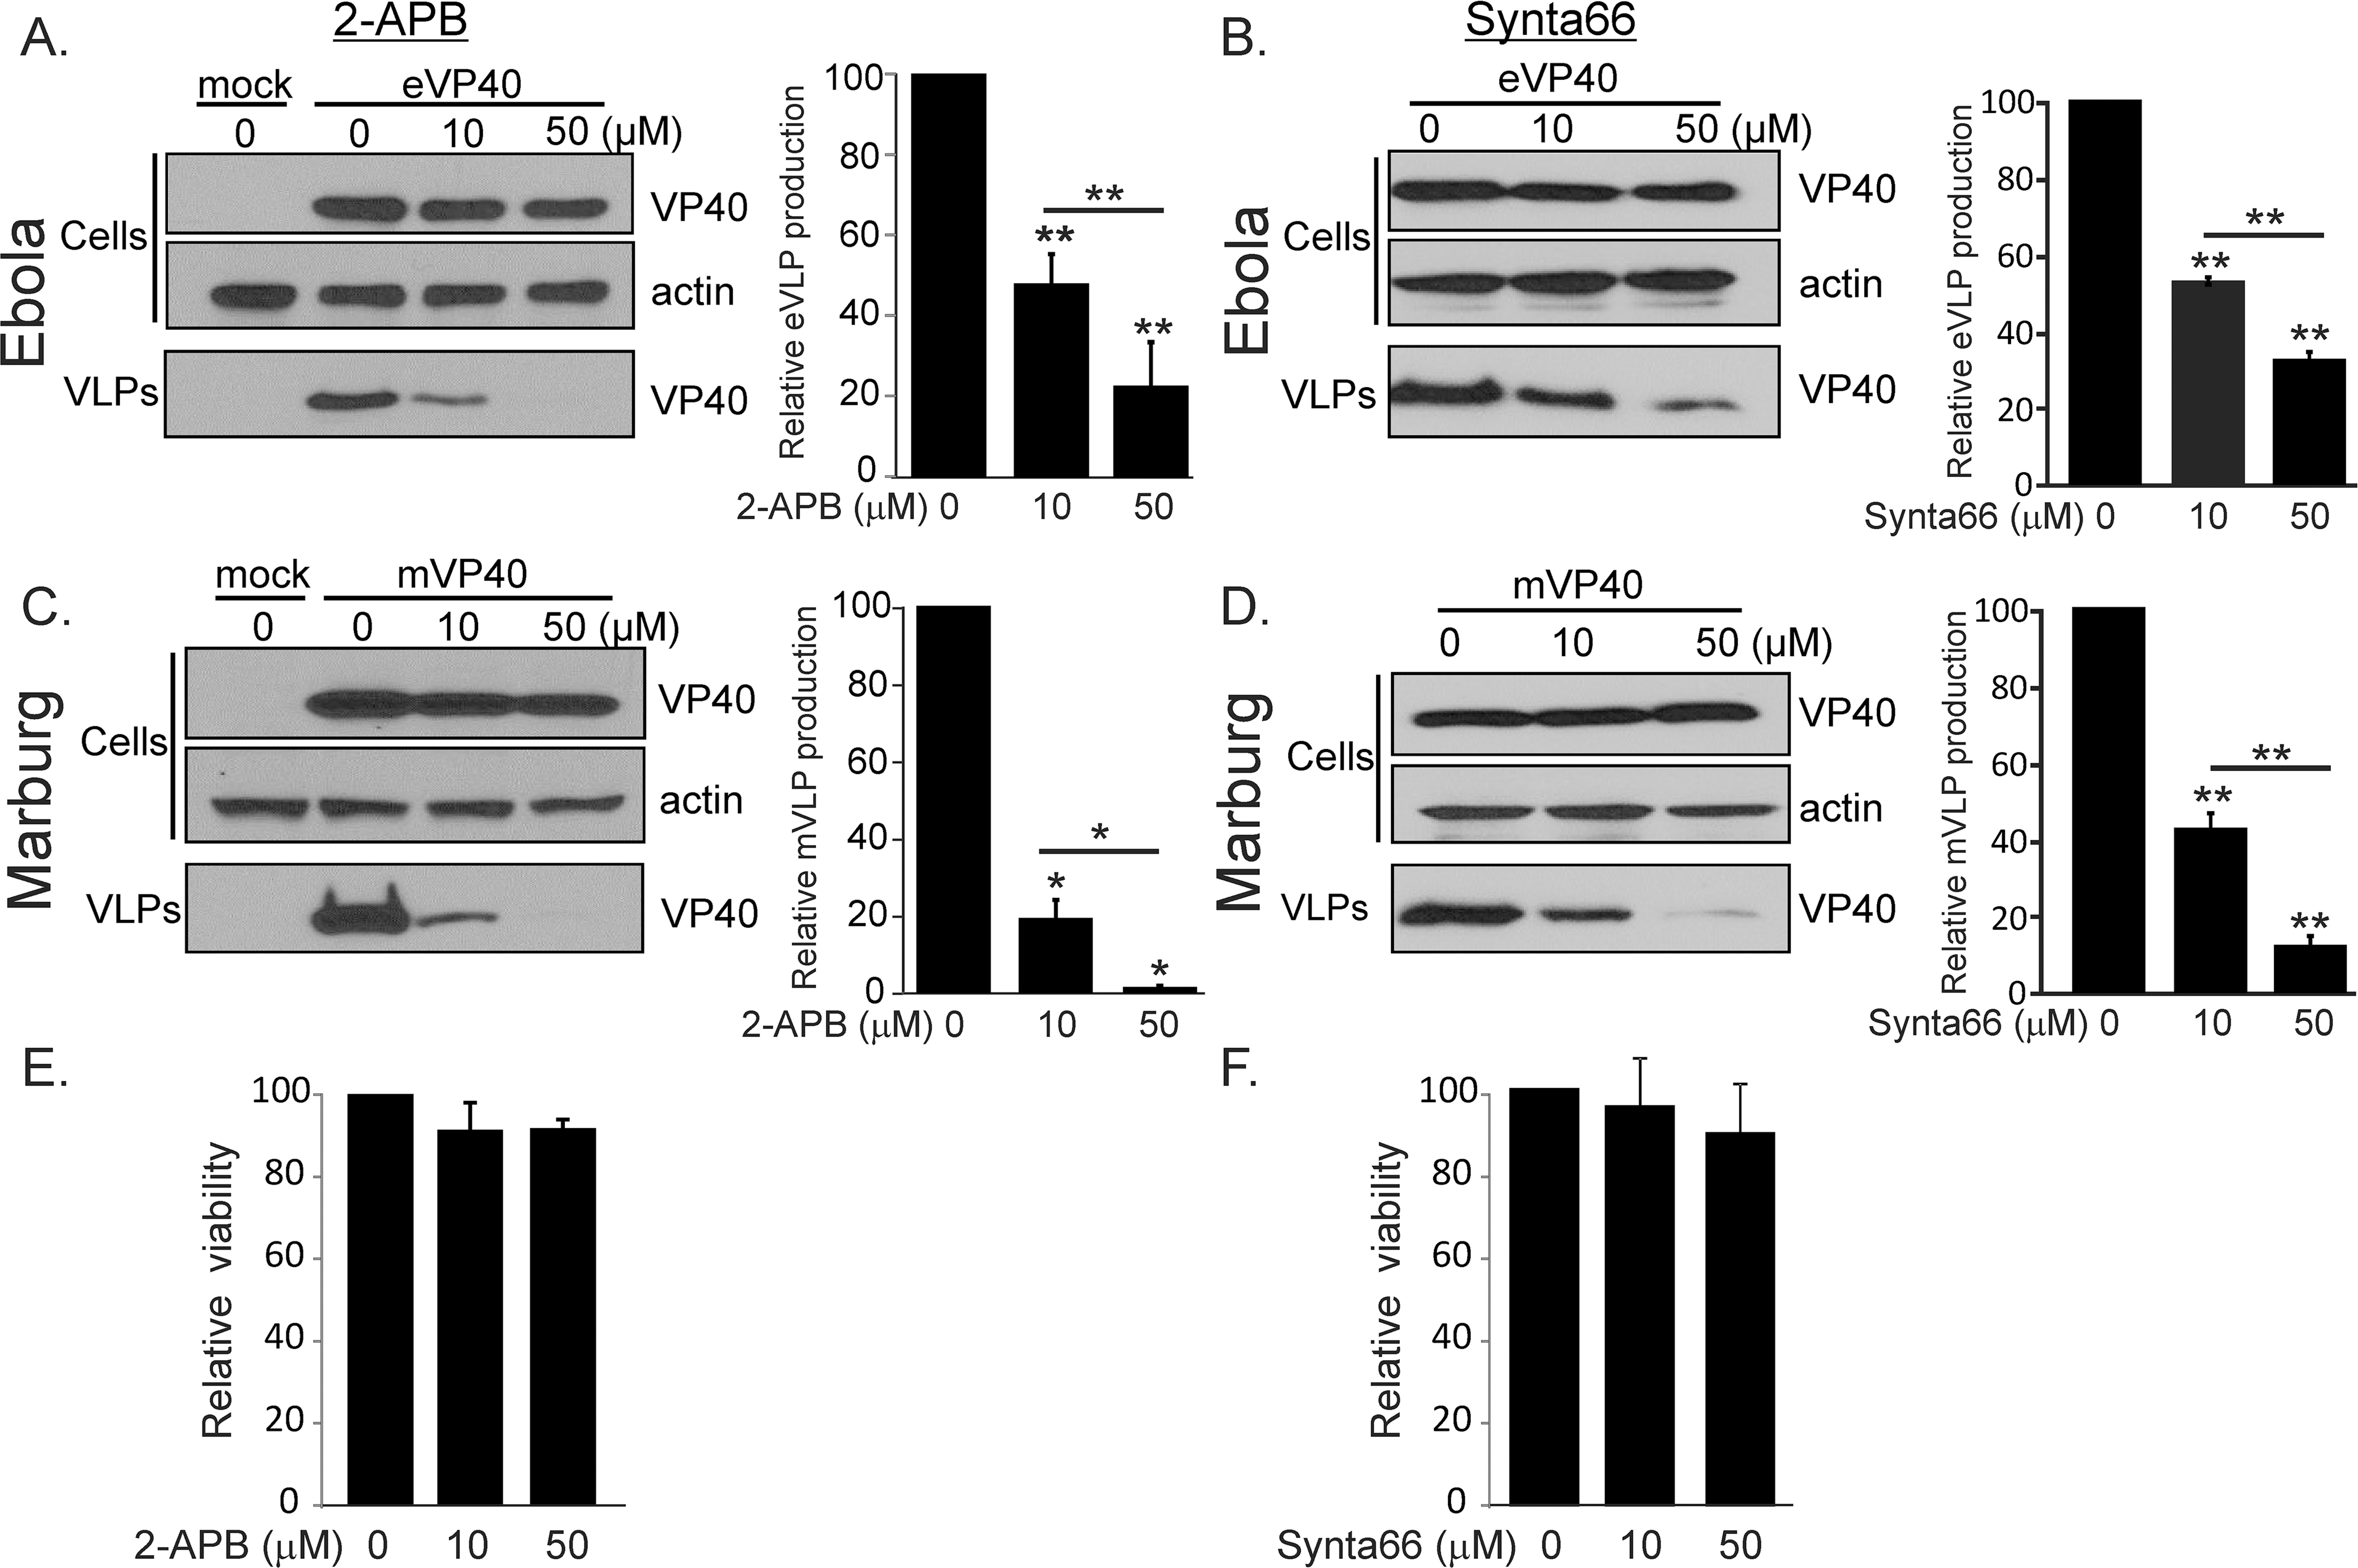 Pharmacological effect of Synta66 and 2-APB on egress of filovirus VLPs.